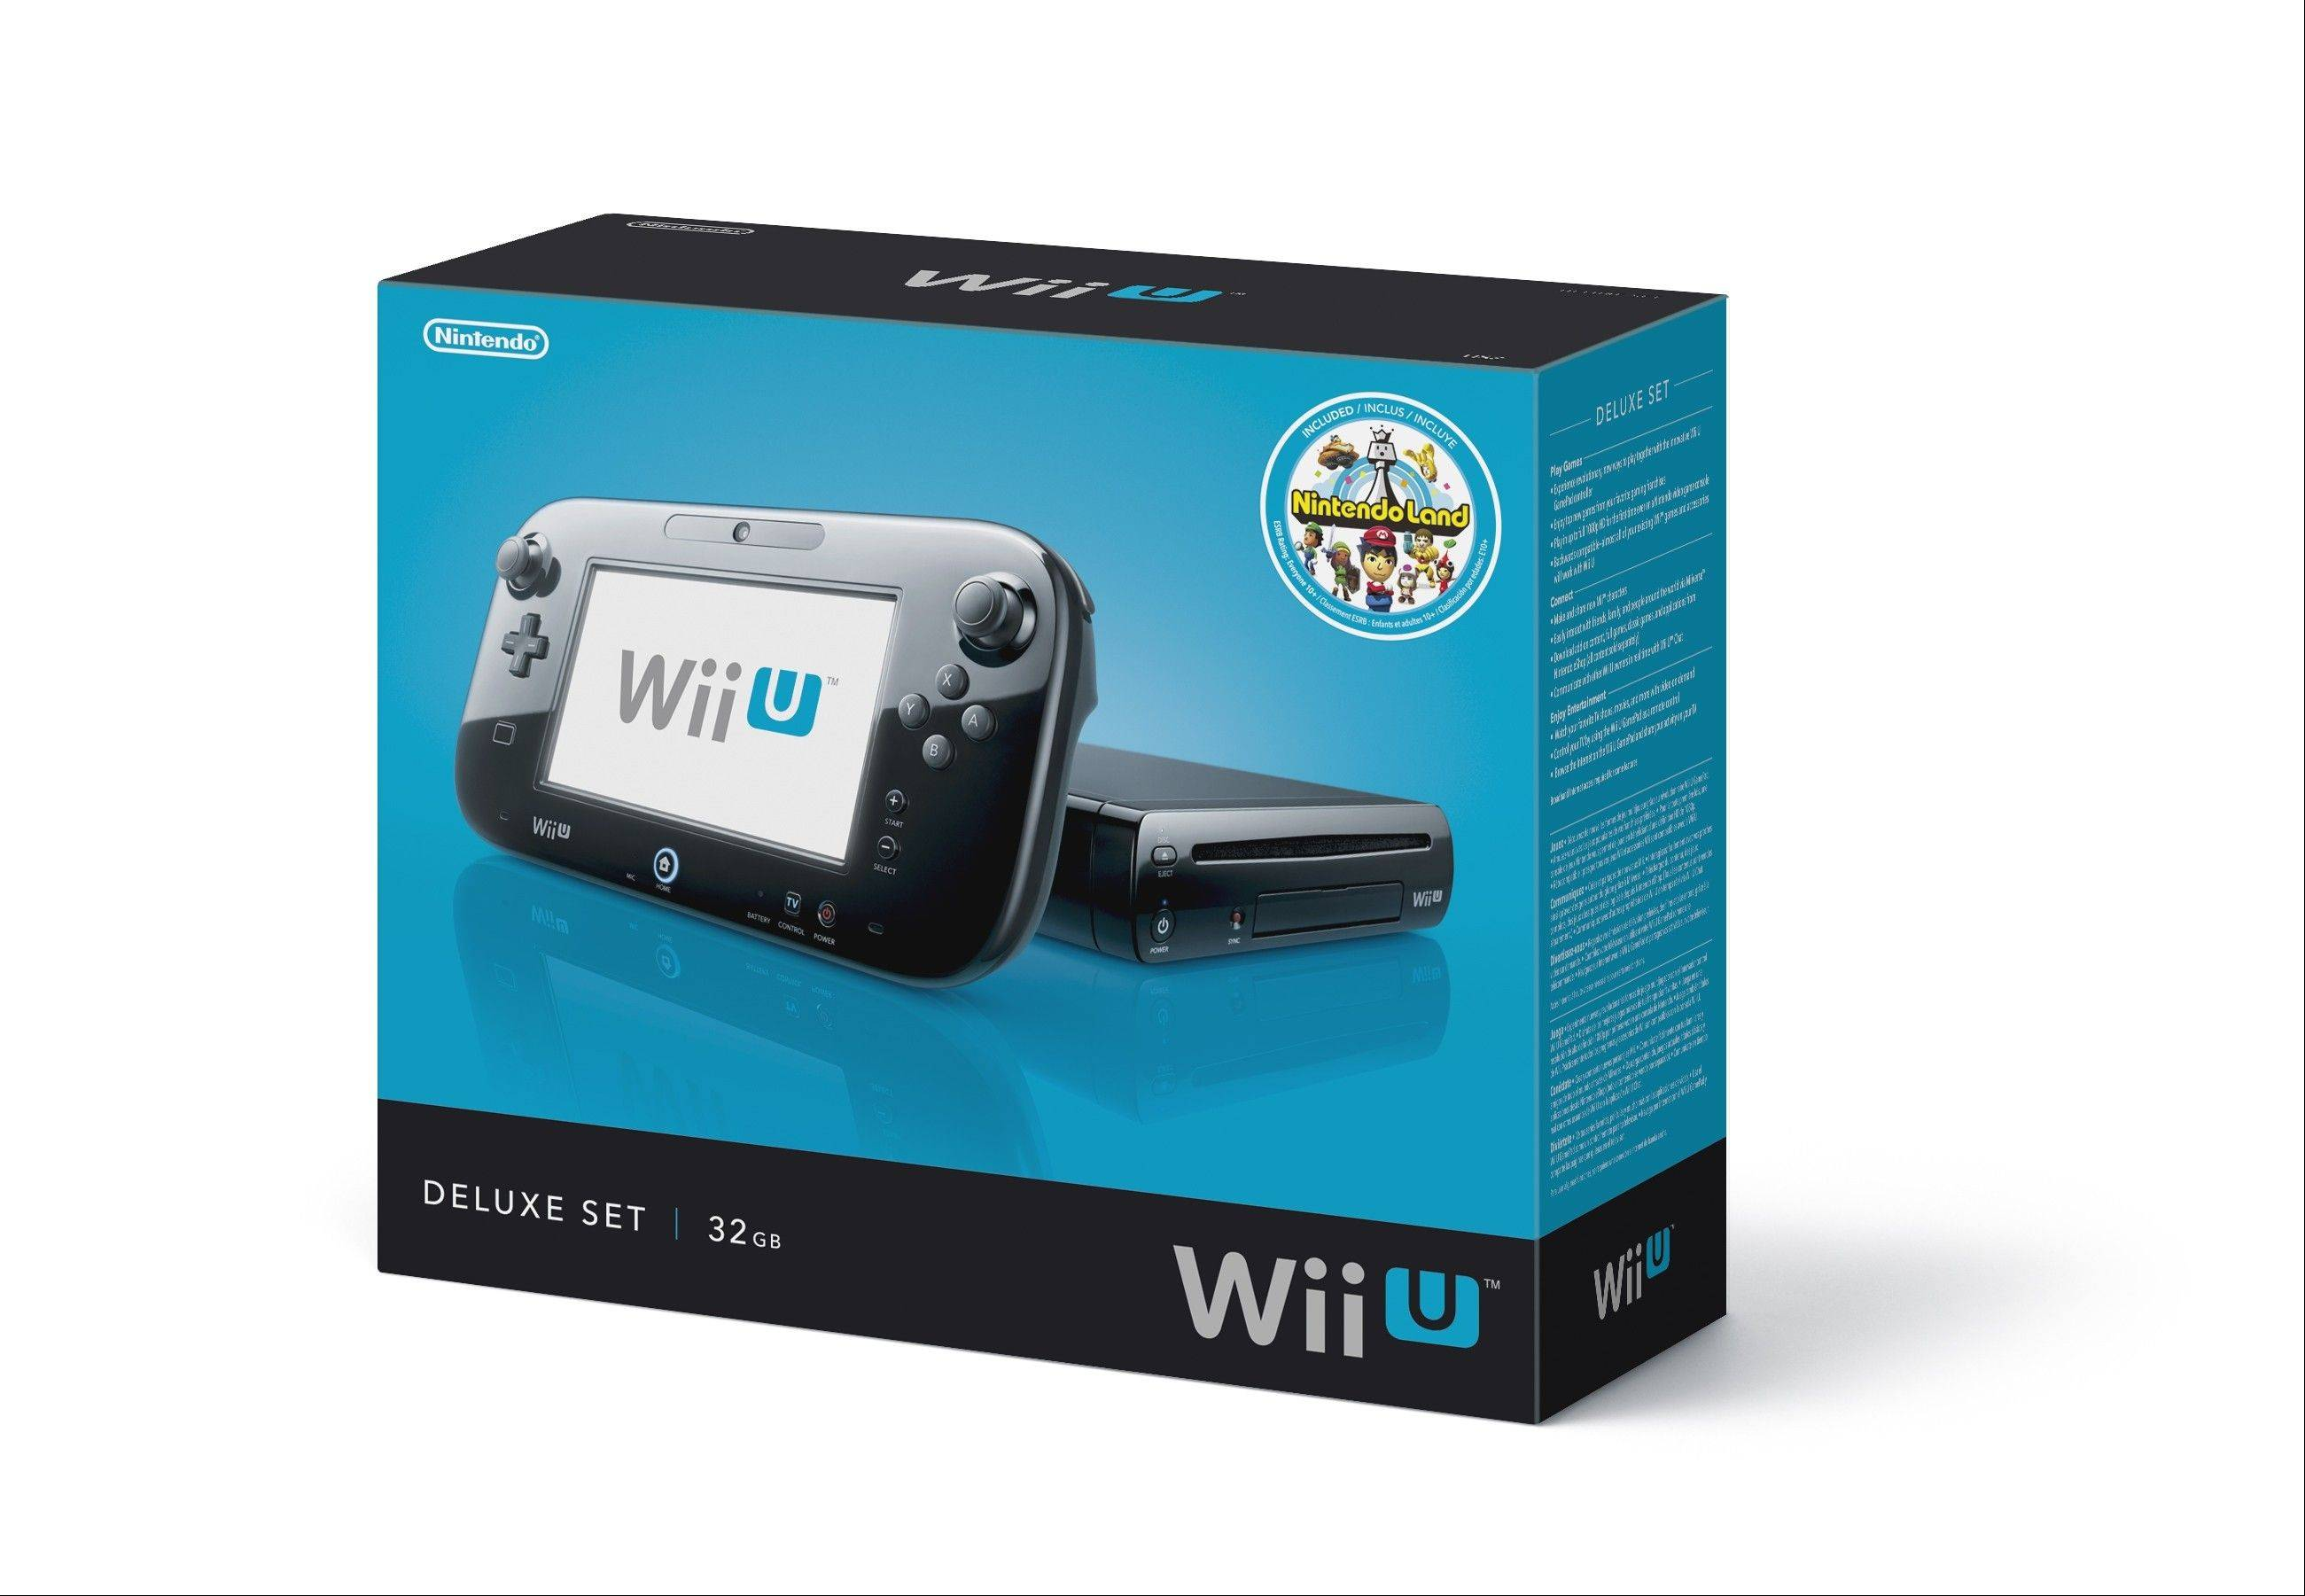 Nintendo�s TVii, which comes with the new Wii U game console and its innovative GamePad touchscreen controller, transforms the GamePad by turning it into a simple remote control that operates your TV and set-top box.